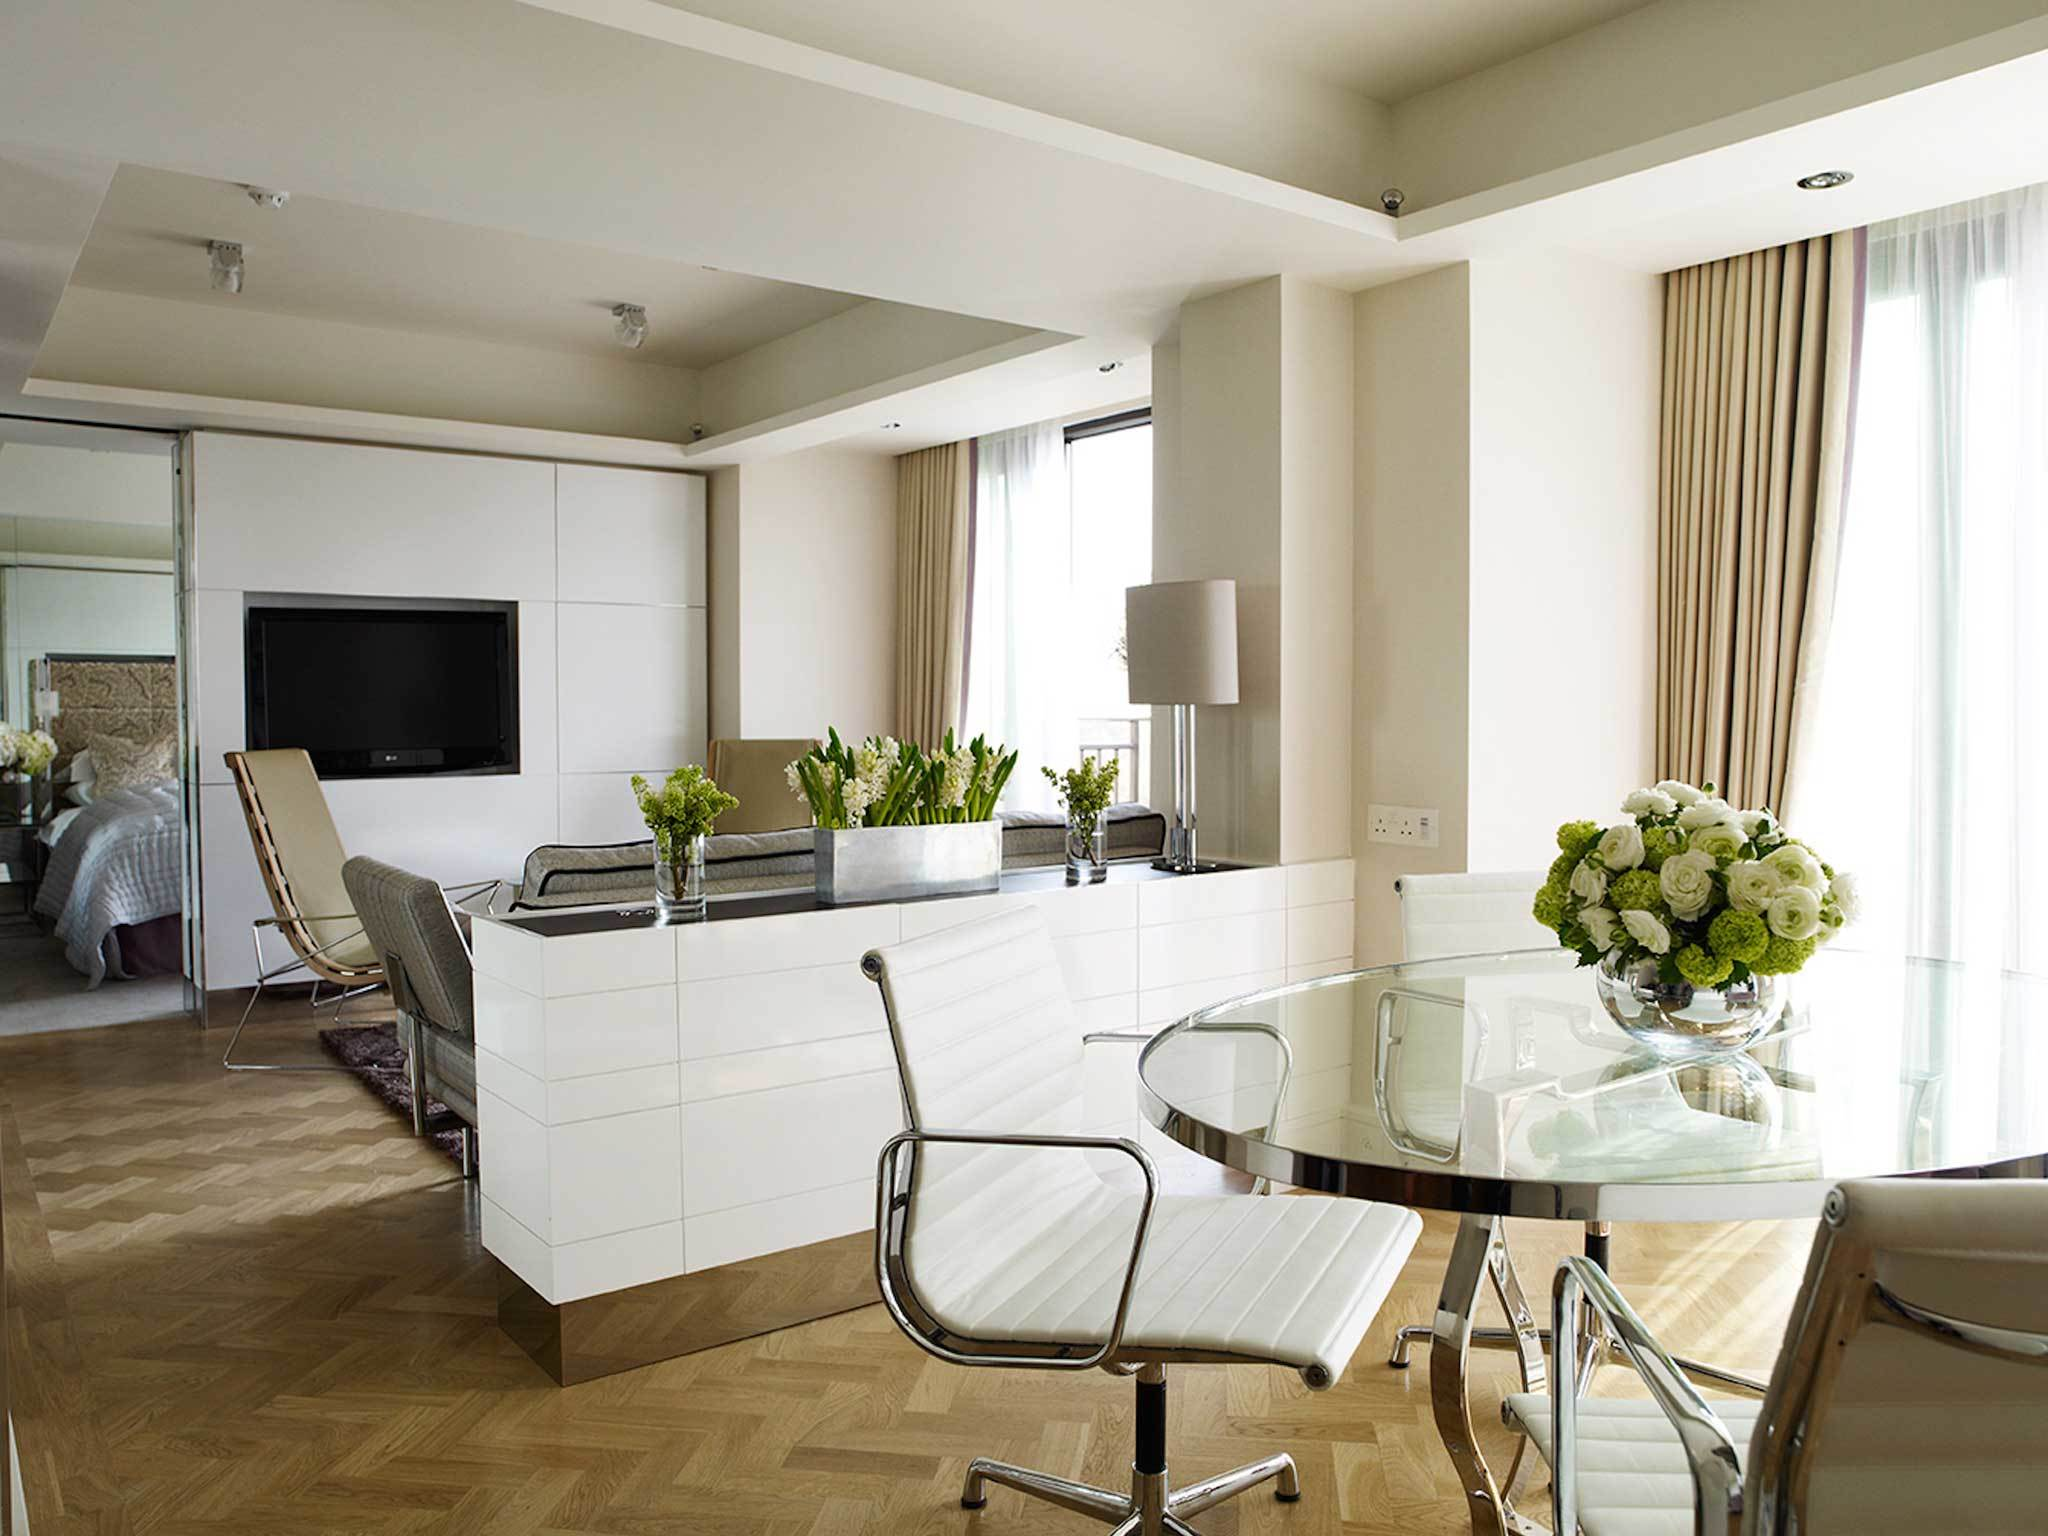 Win an A-list experience at The Athenaeum Hotel & Apartments